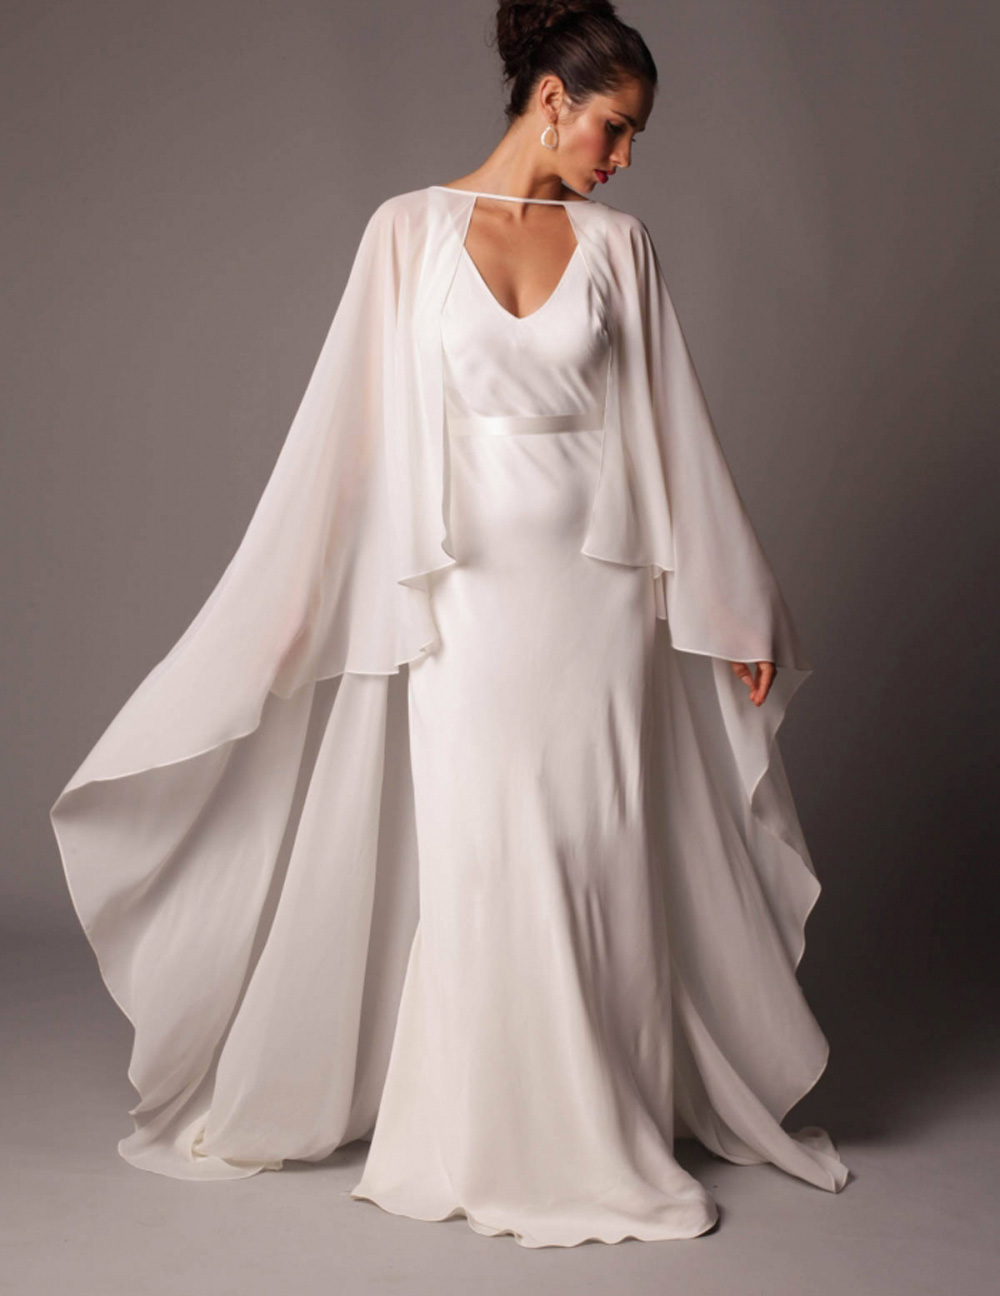 Chiffon Long Gauze Shawl Wrapped In BOLERO Floor-Length Bridal Wedding Jacket New Wedding Capes